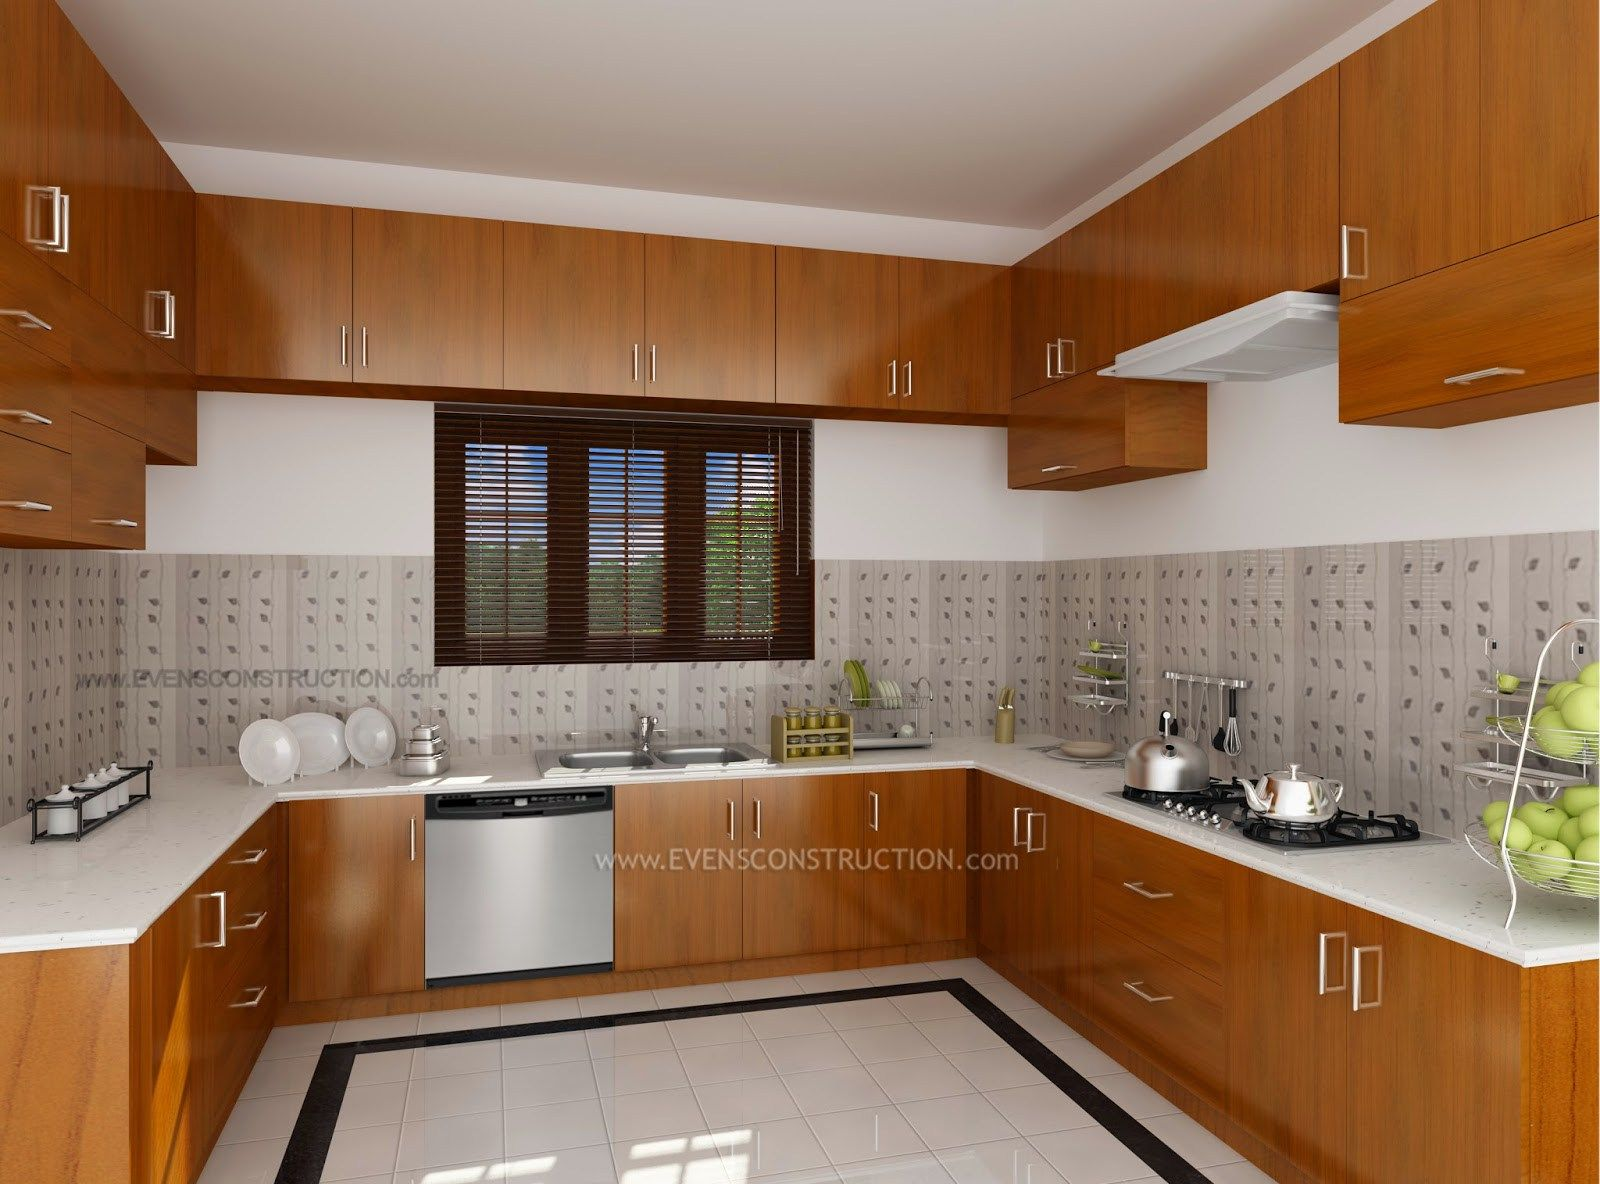 house kitchen interior design pictures design interior kitchen home kerala modern house kitchen 7178